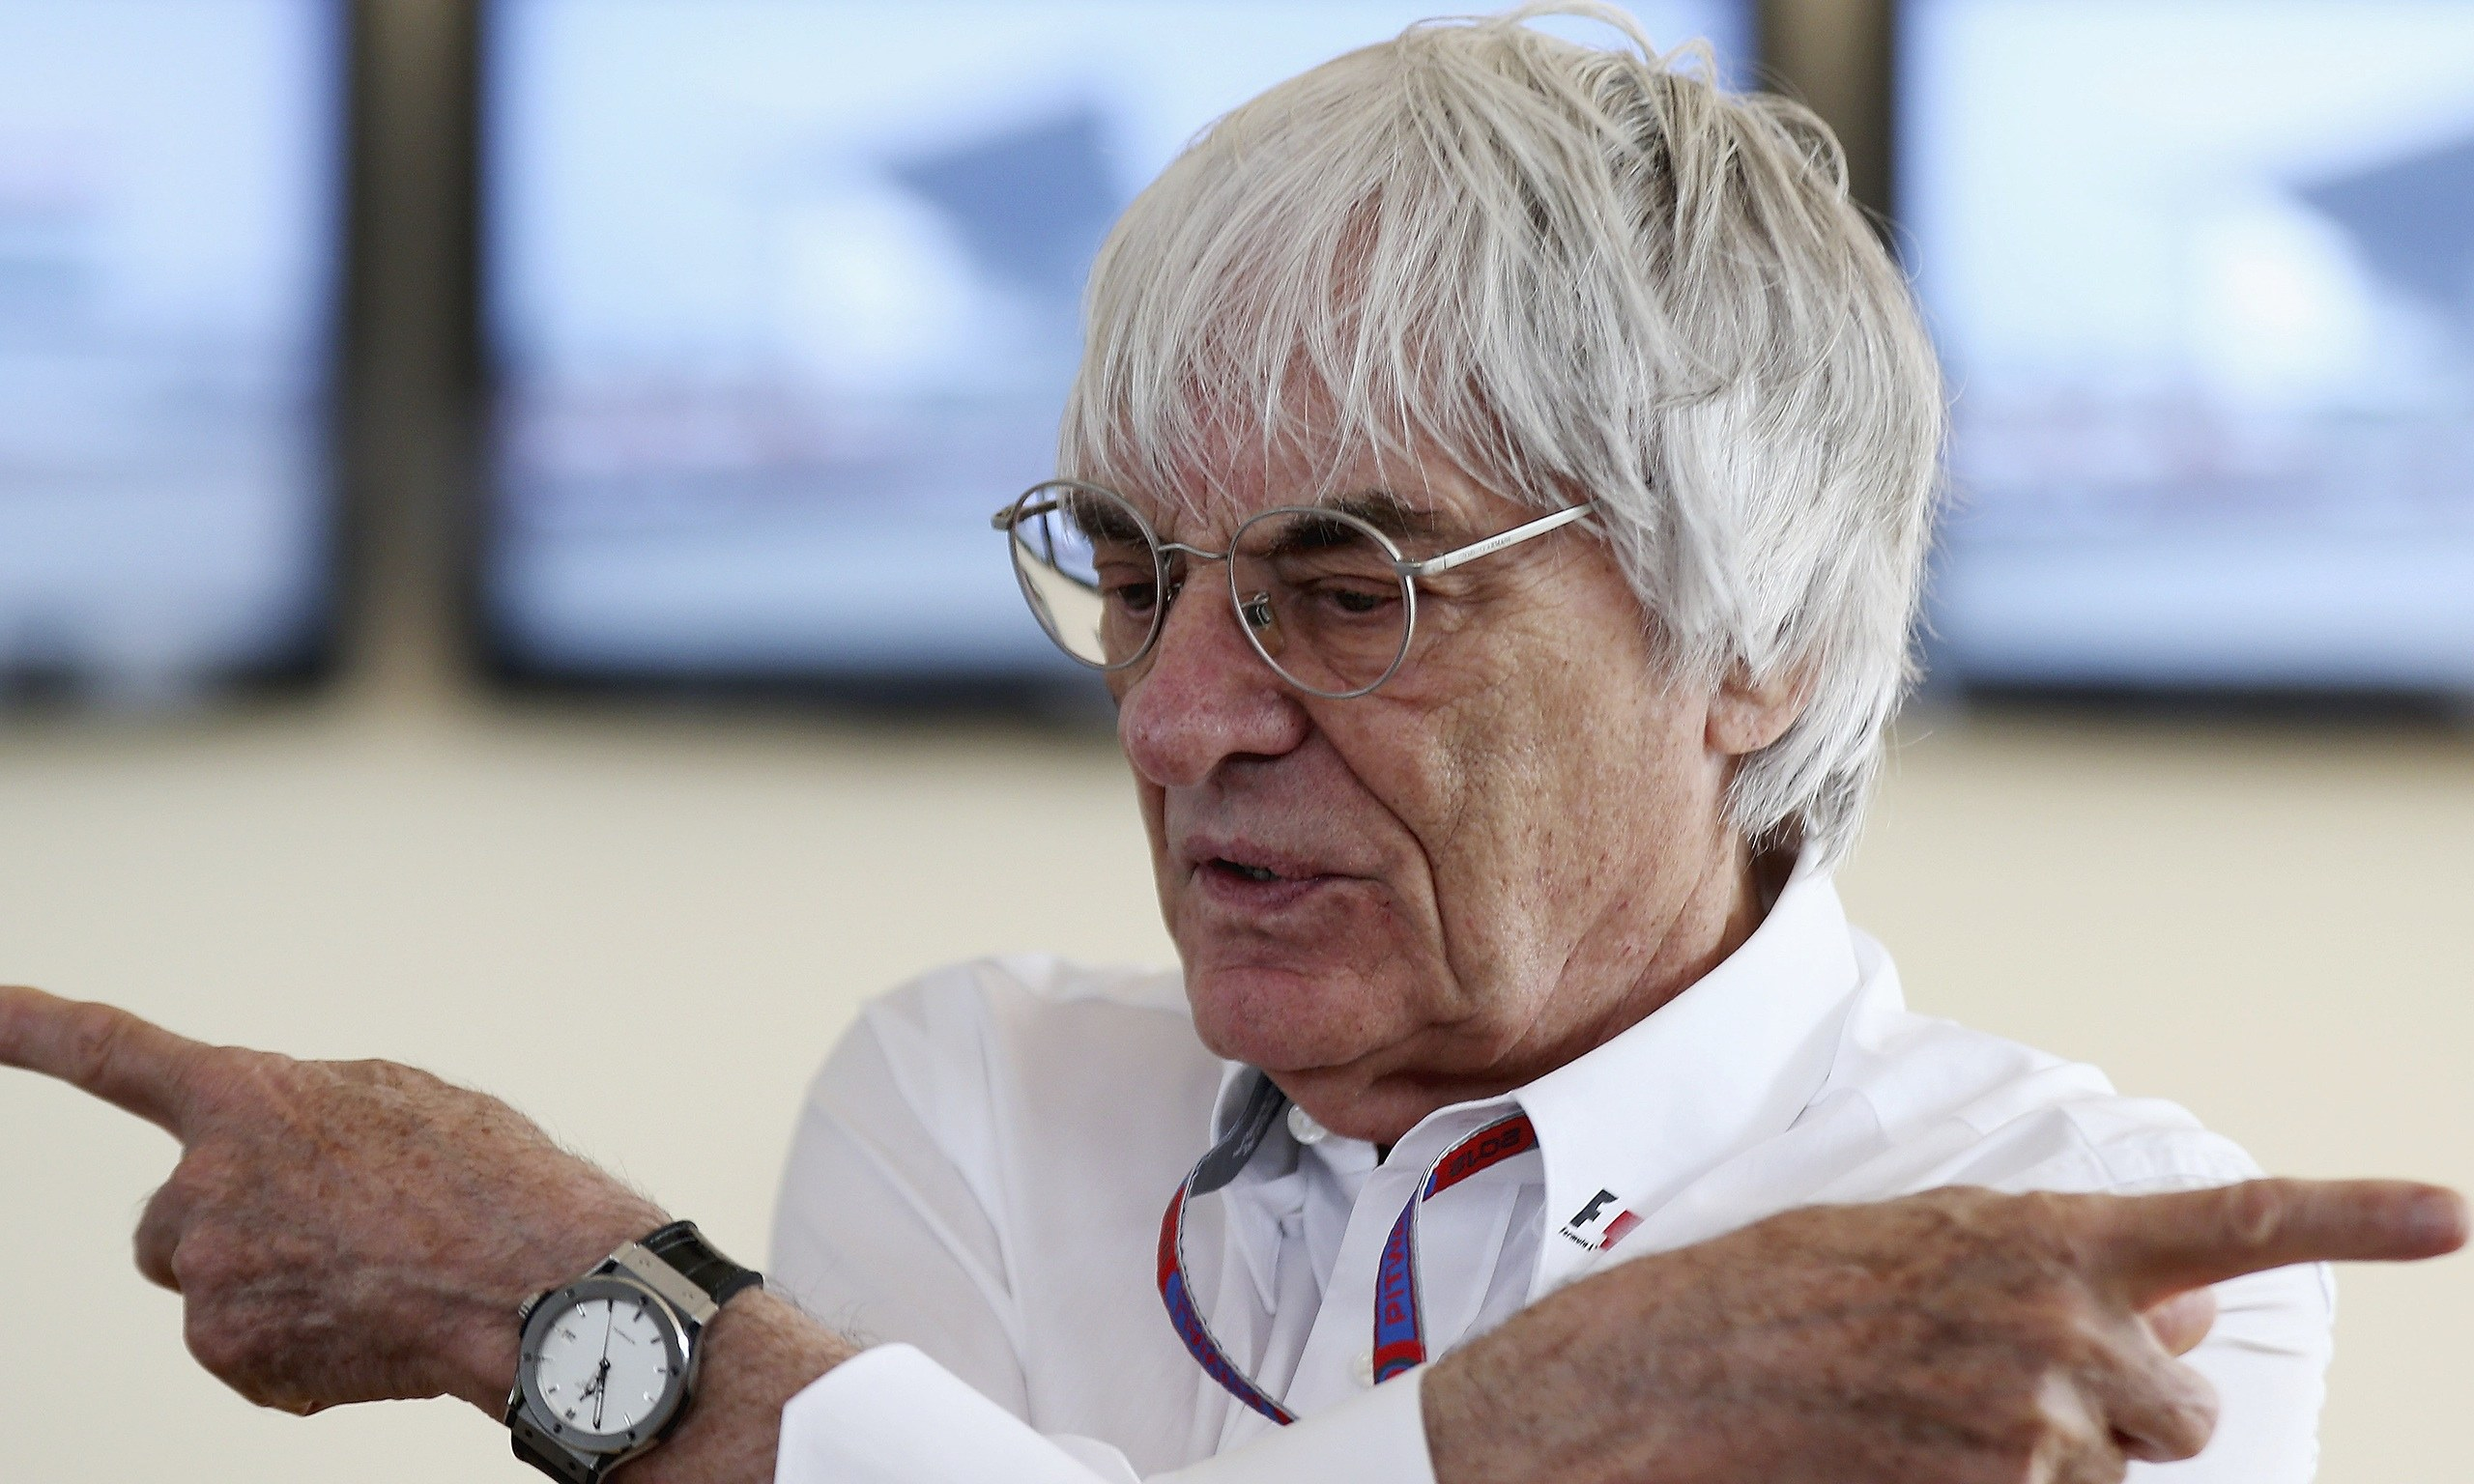 Epic Troll Bernie Ecclestone Declares F1 'Worse Than It Has Ever Been', Tells Reporters He Wouldn't Pay To Watch